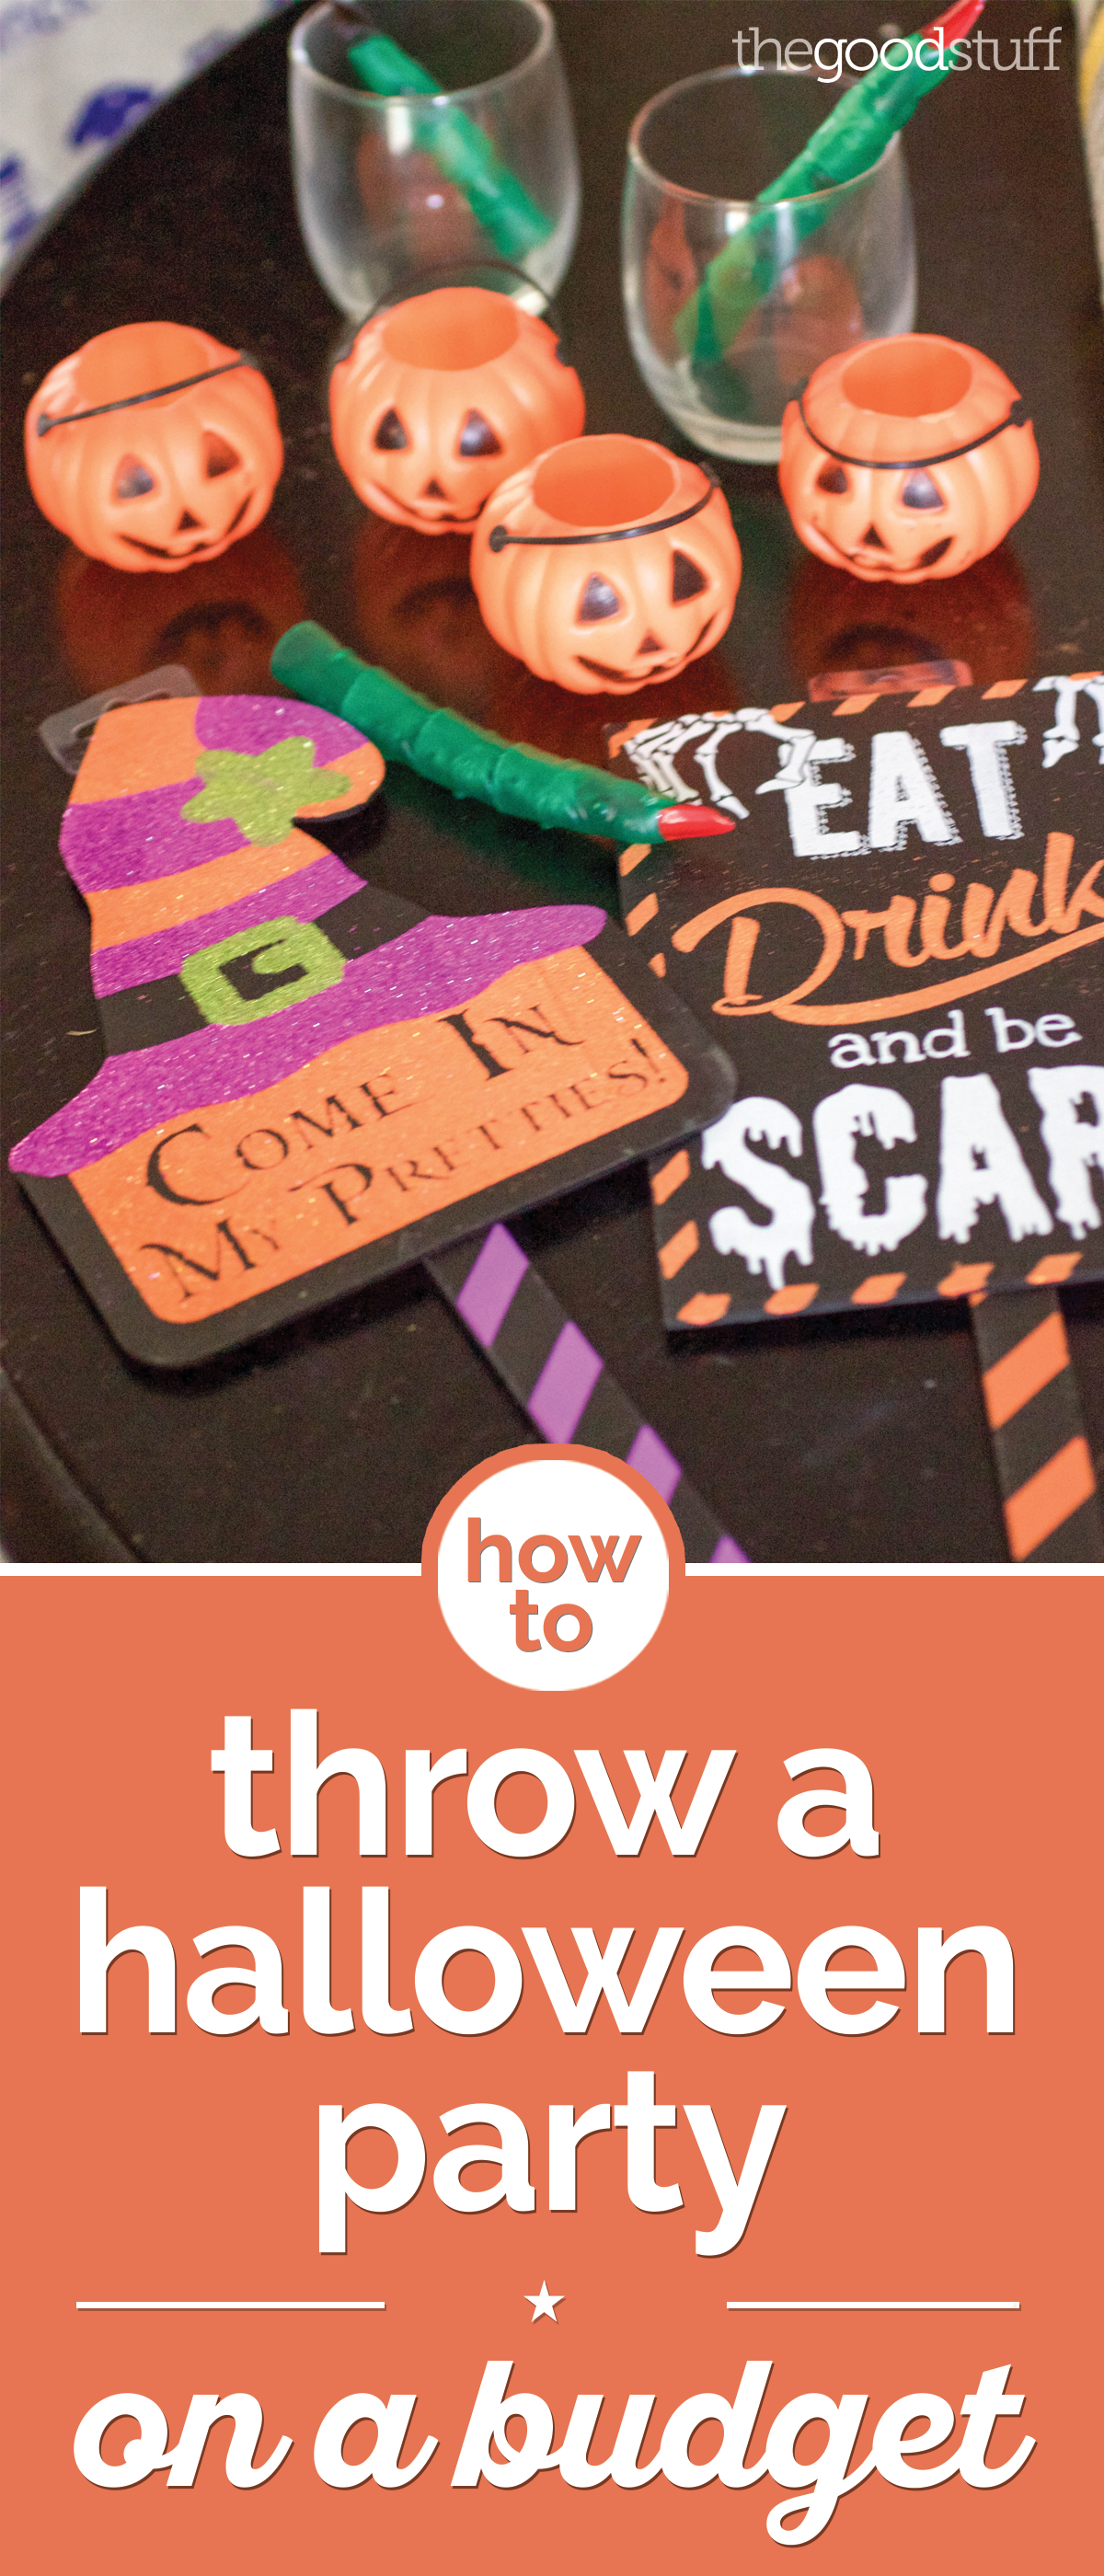 how to throw a halloween party on a budget the good stuff - Throw A Halloween Party